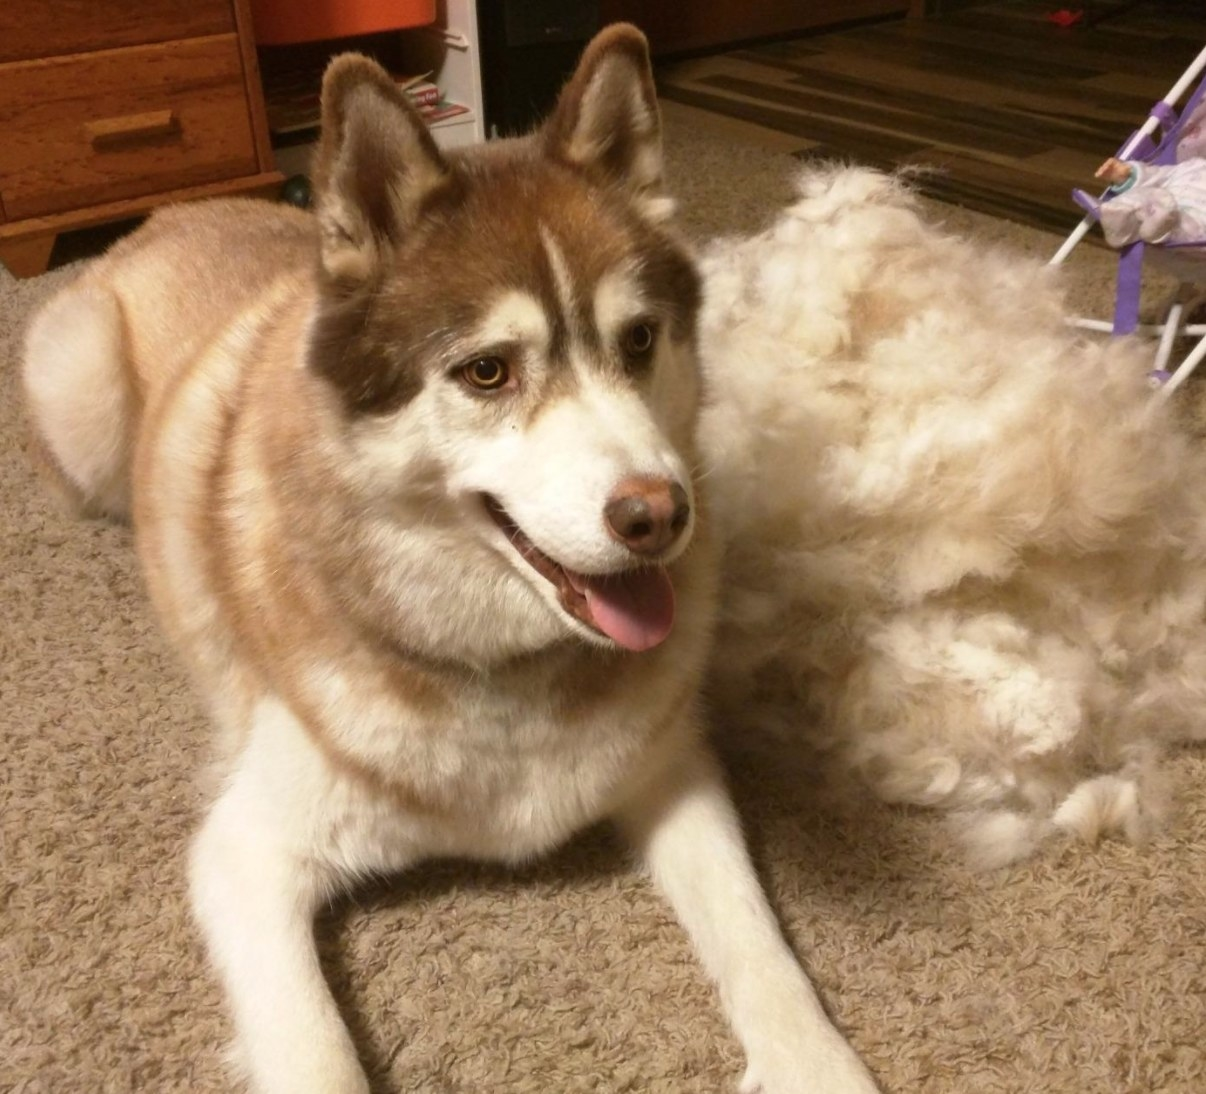 Reviewer's husky next to a huge pile of fur